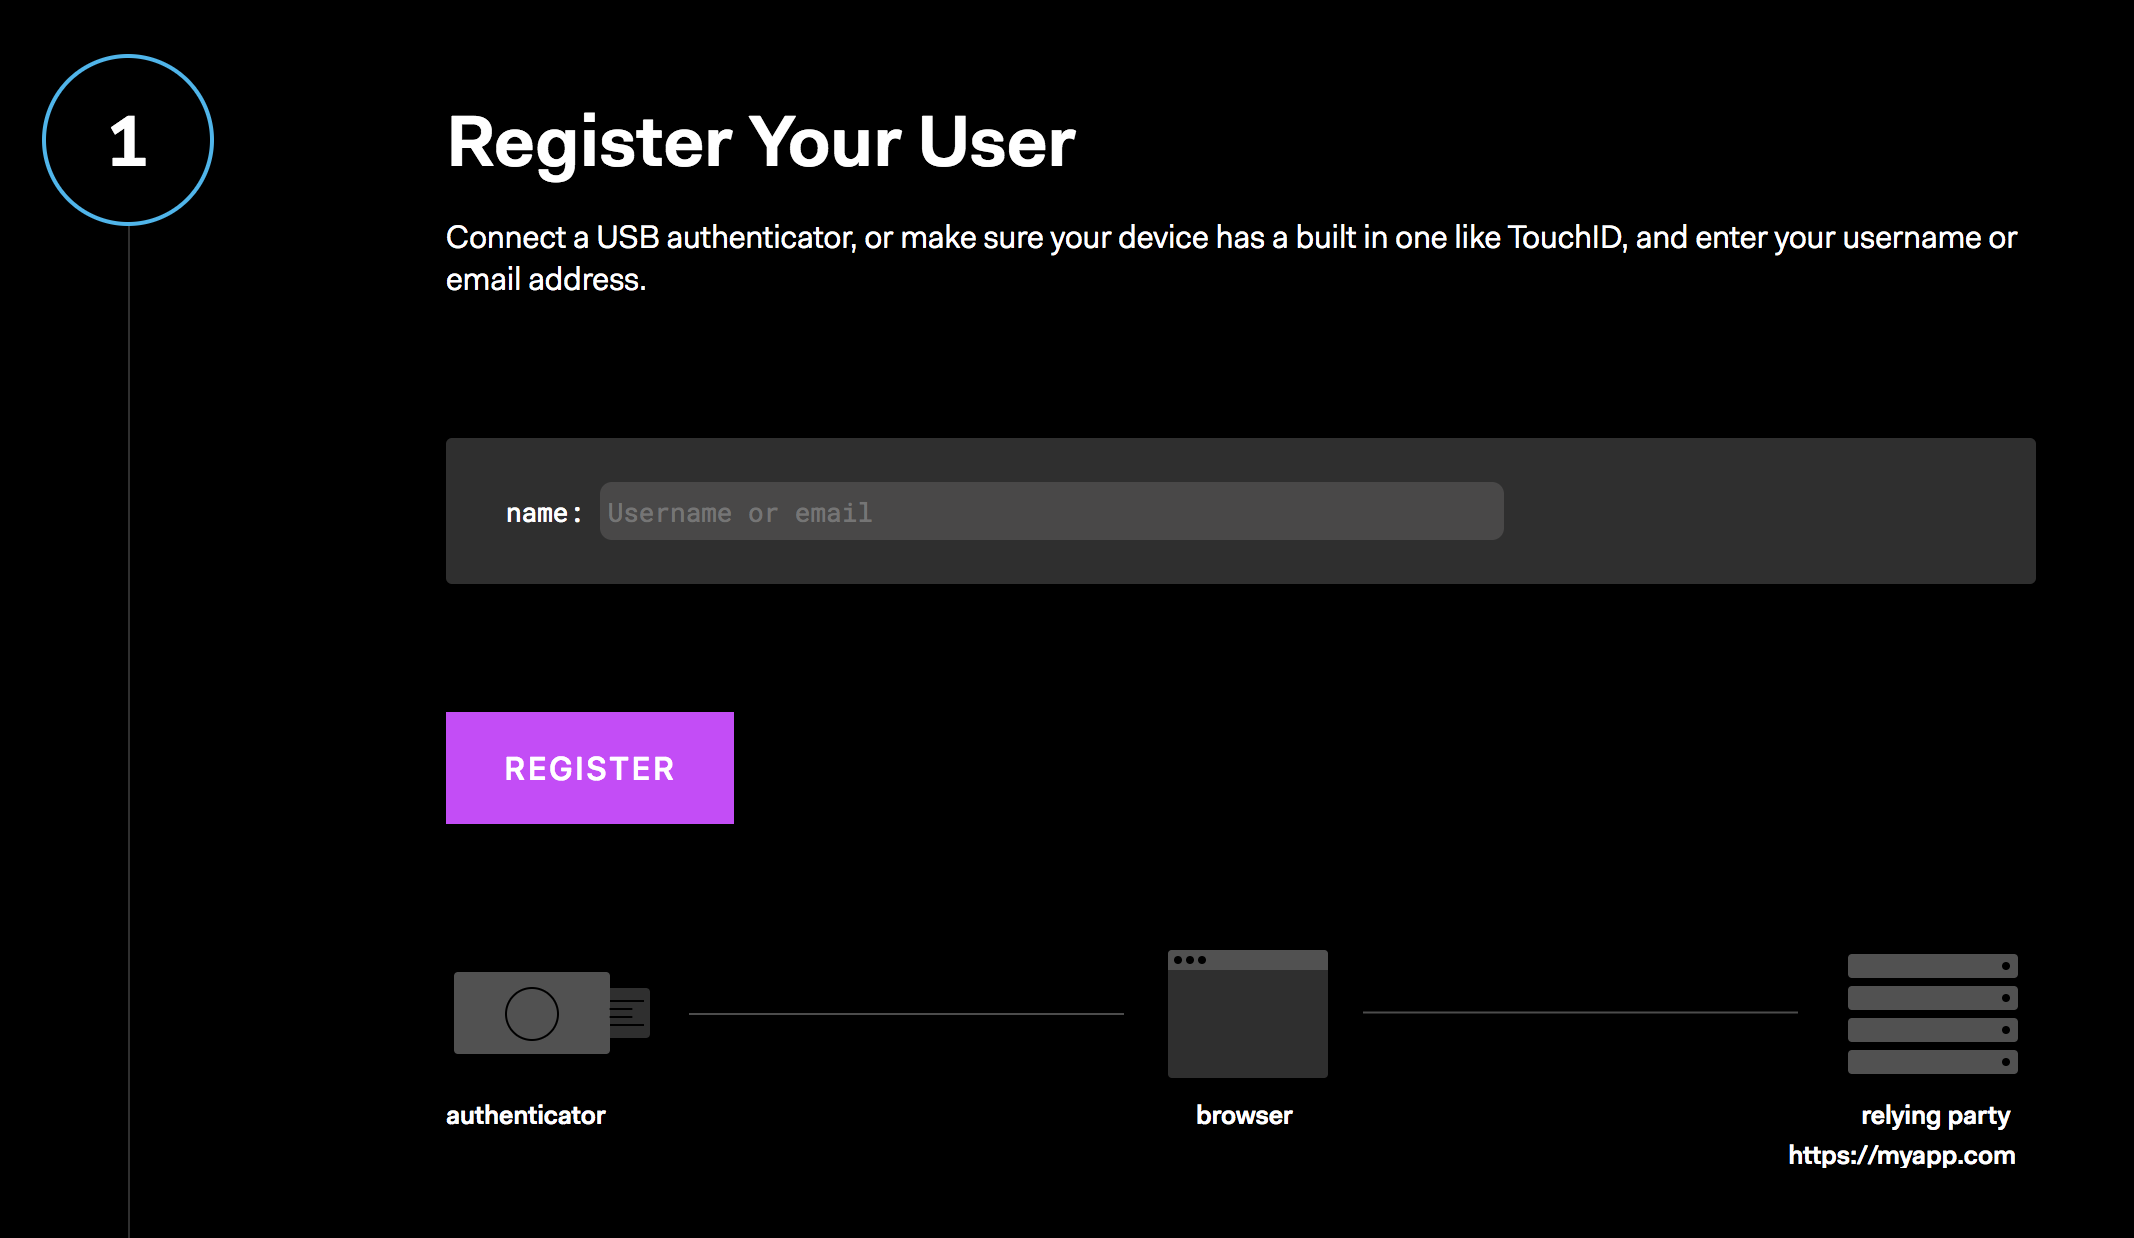 WebAuthn Credentials and Login Demo - Step 1 - Register user on WebAuthn.me